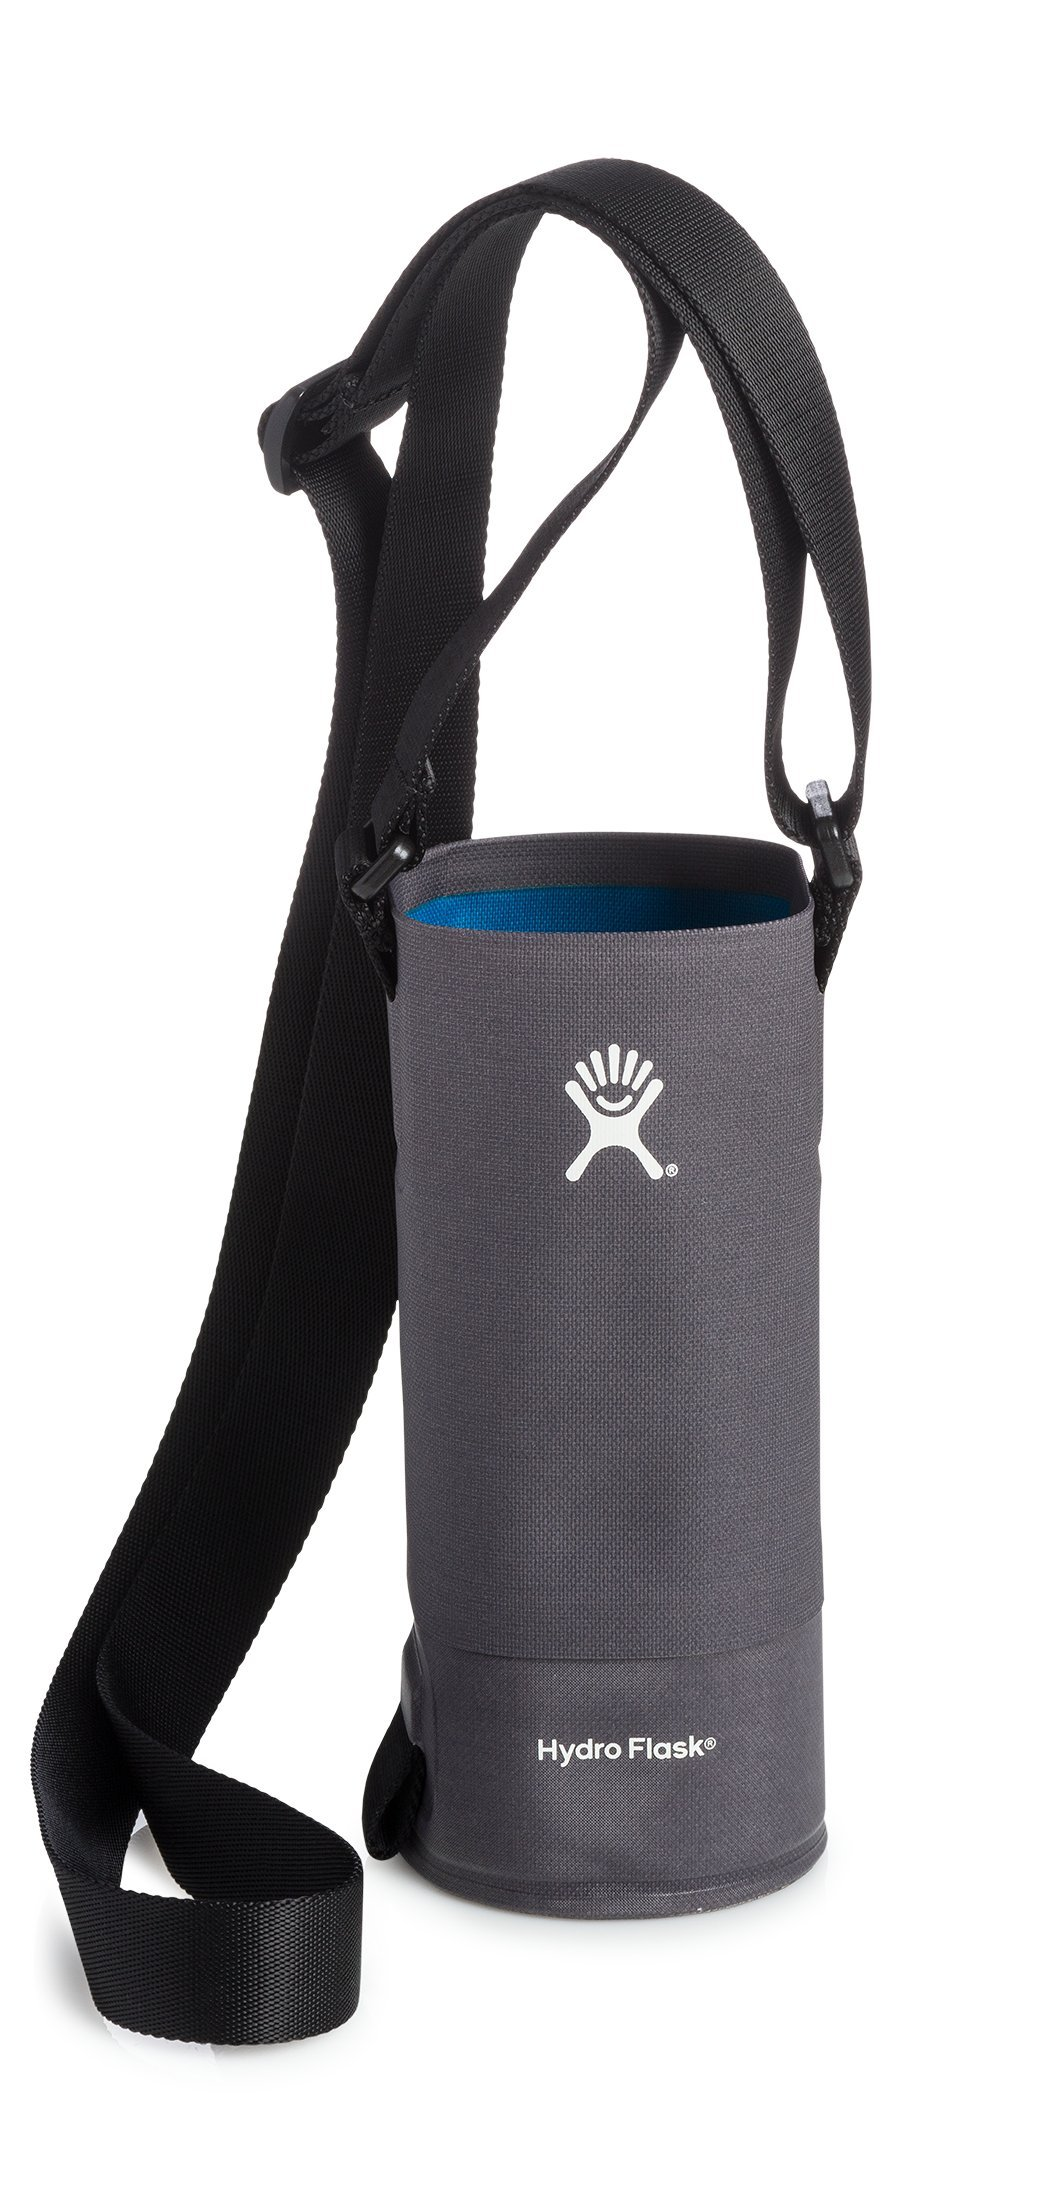 Hydro Flask Small Soft Sided Nylon Tag Along Water Bottle Sling with Pockets, Black (Fits 12 oz, 18 oz, 21 oz, and 24 oz Bottles)